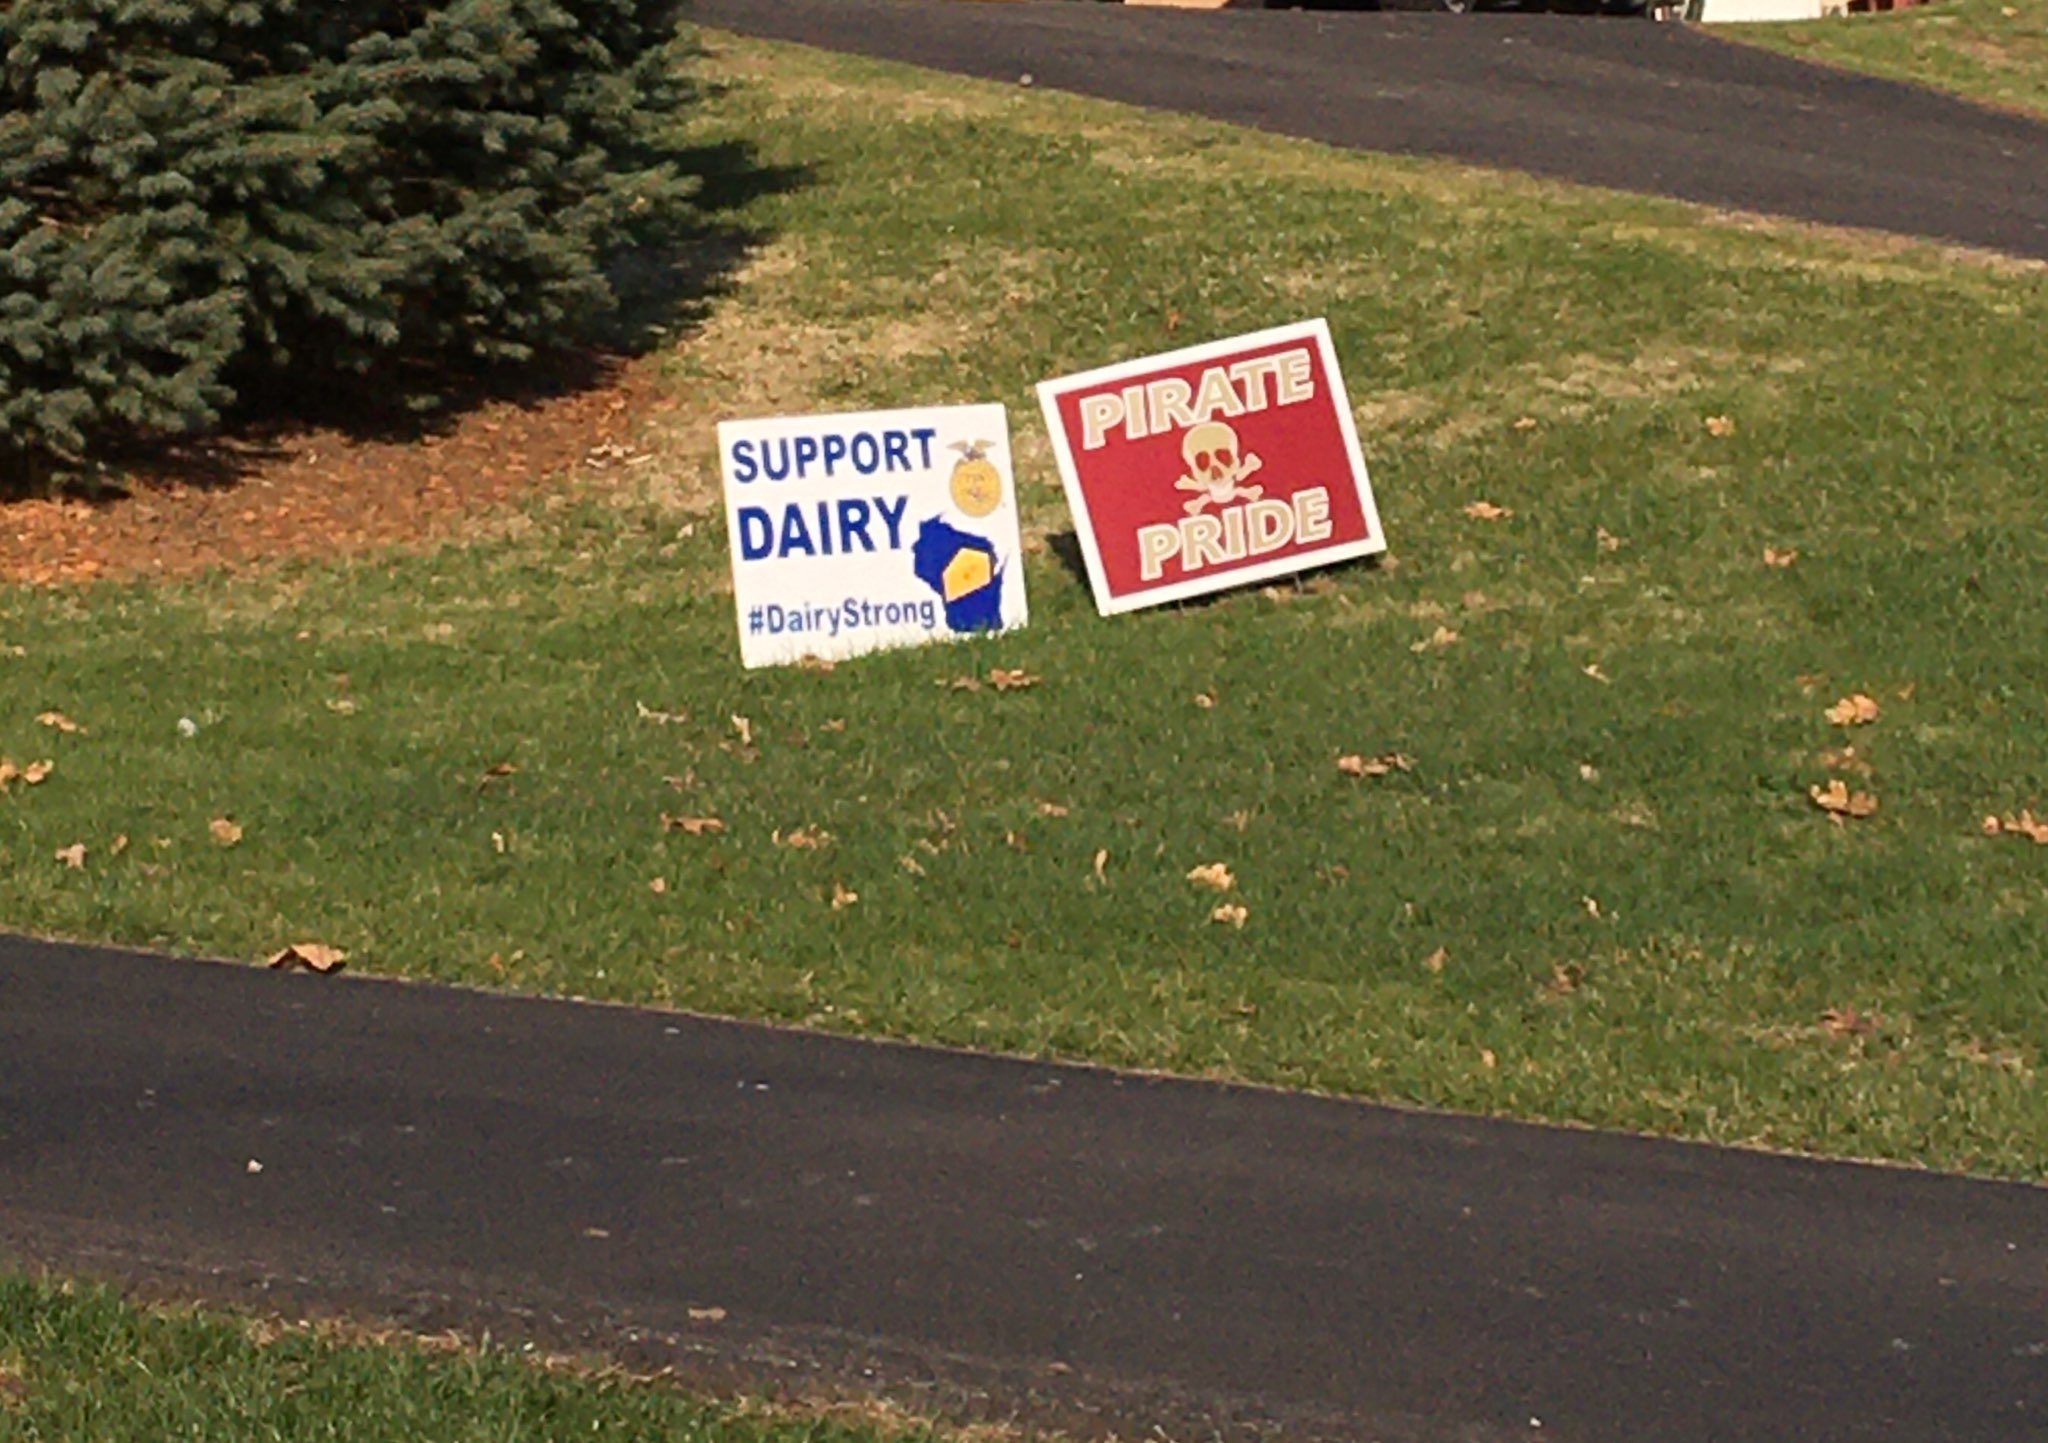 A show of support in the De Soto community for the school and the agricultural industry. They are seeing many dairy signs pop up next to the traditional Pirate Pride signs.